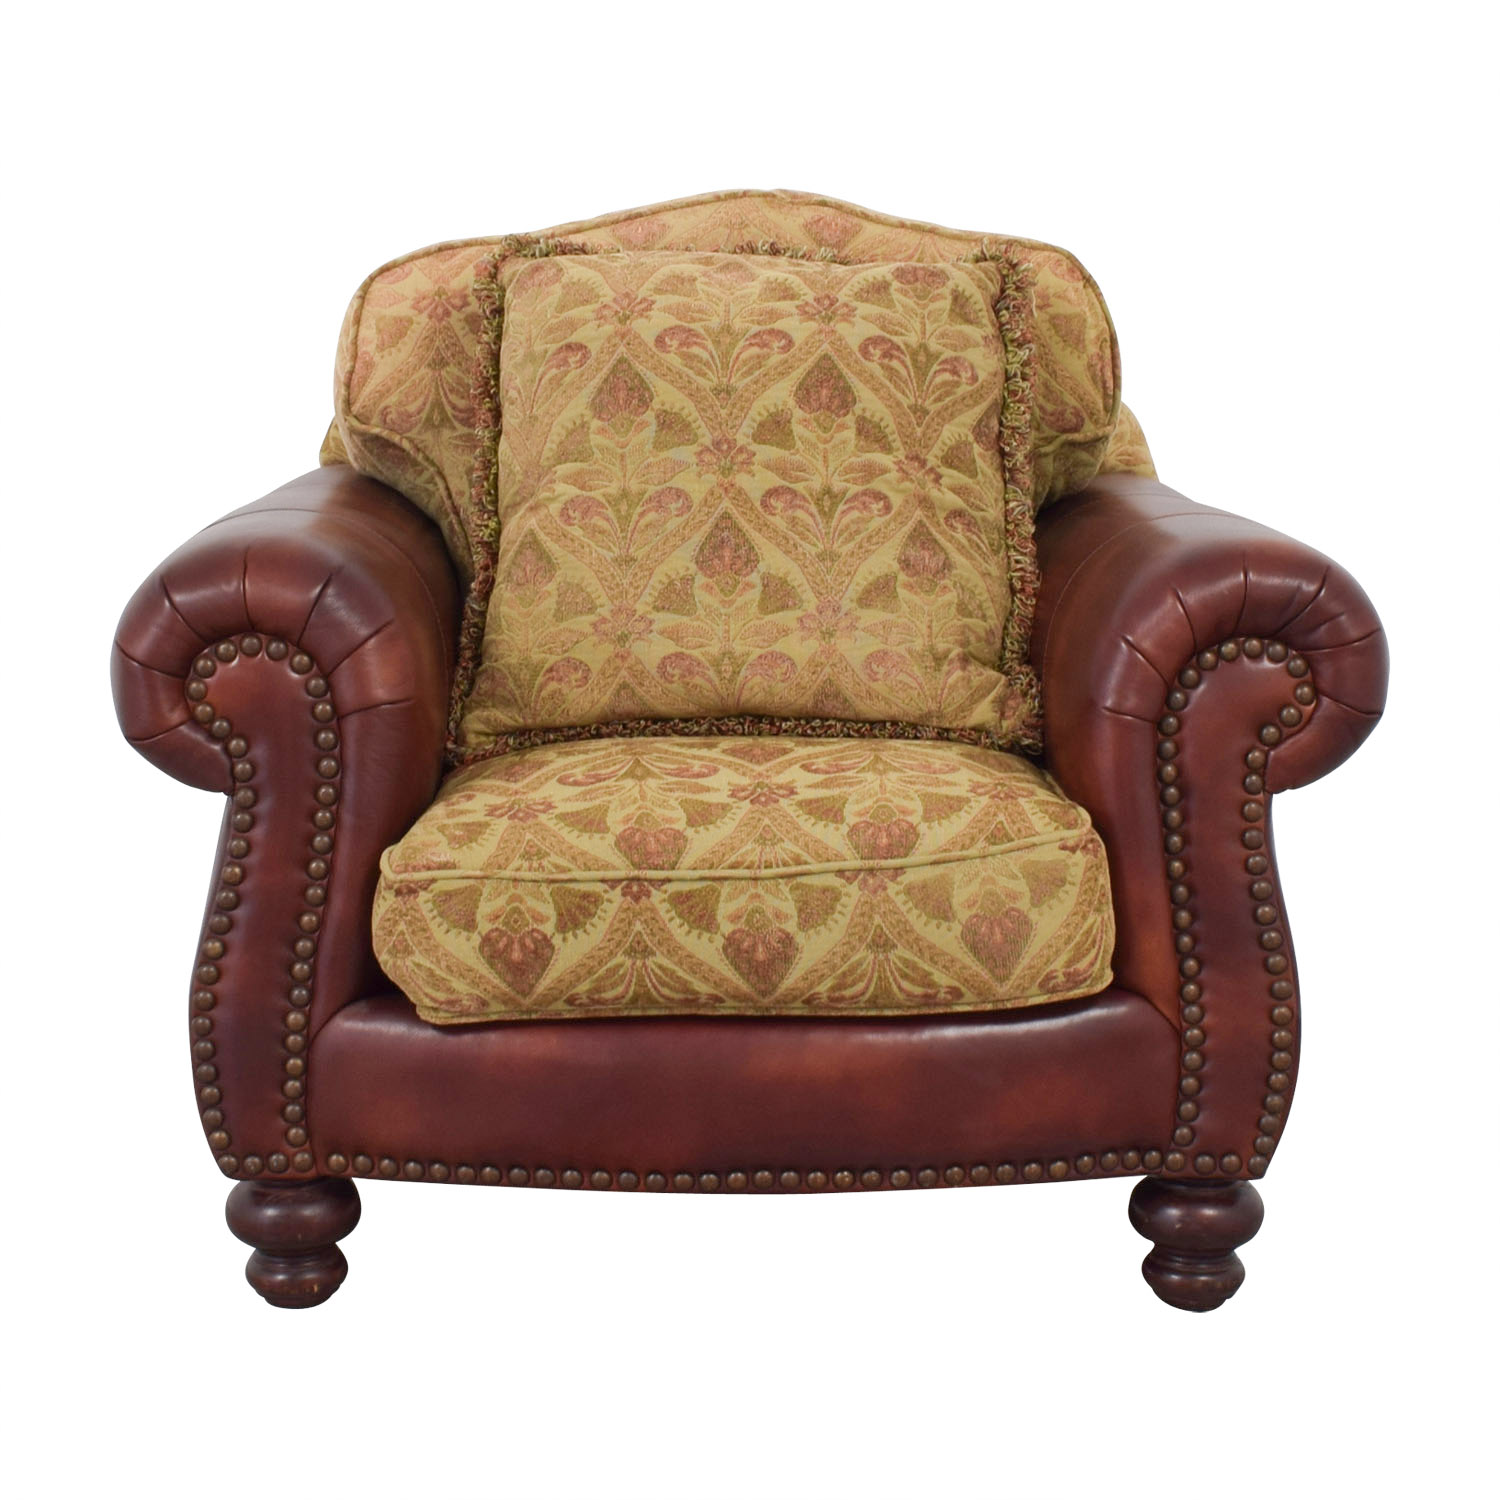 Distinctions Distinctions Red Leather Nailhead Club Chair with Upholstered Cushions Accent Chairs